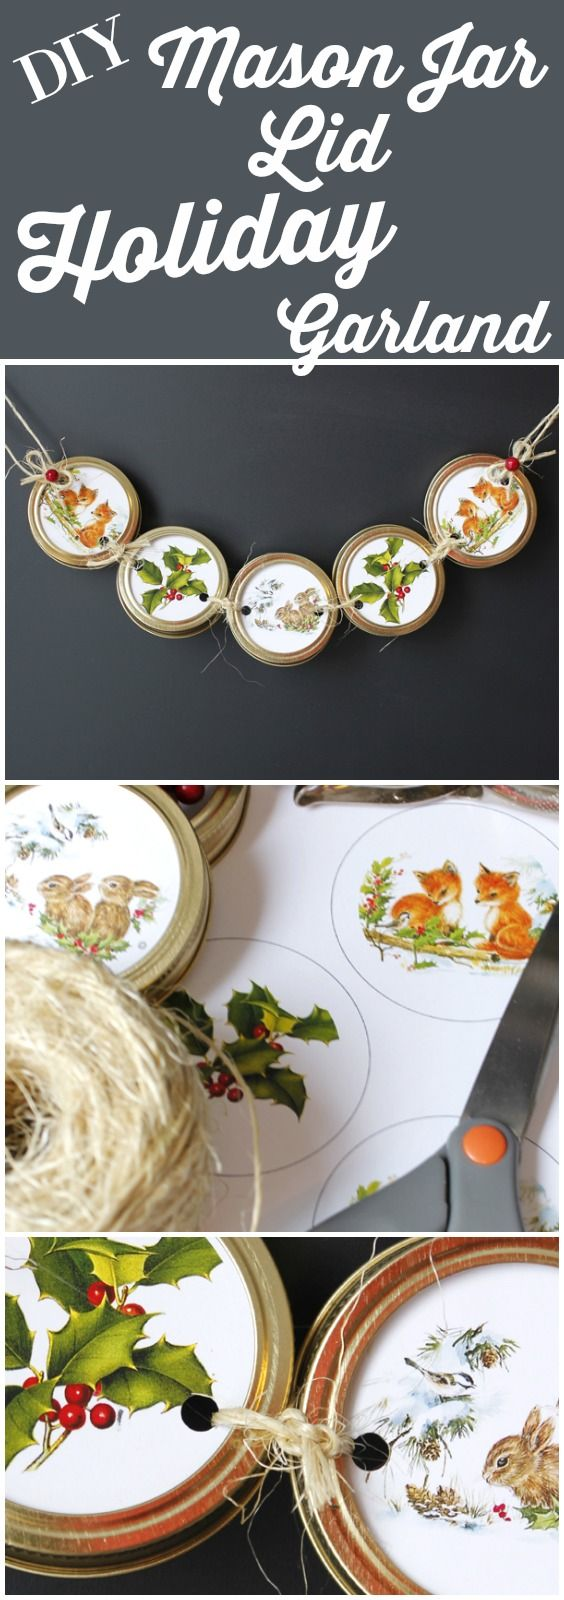 DIY Mason Jar Lid Holiday Garland.